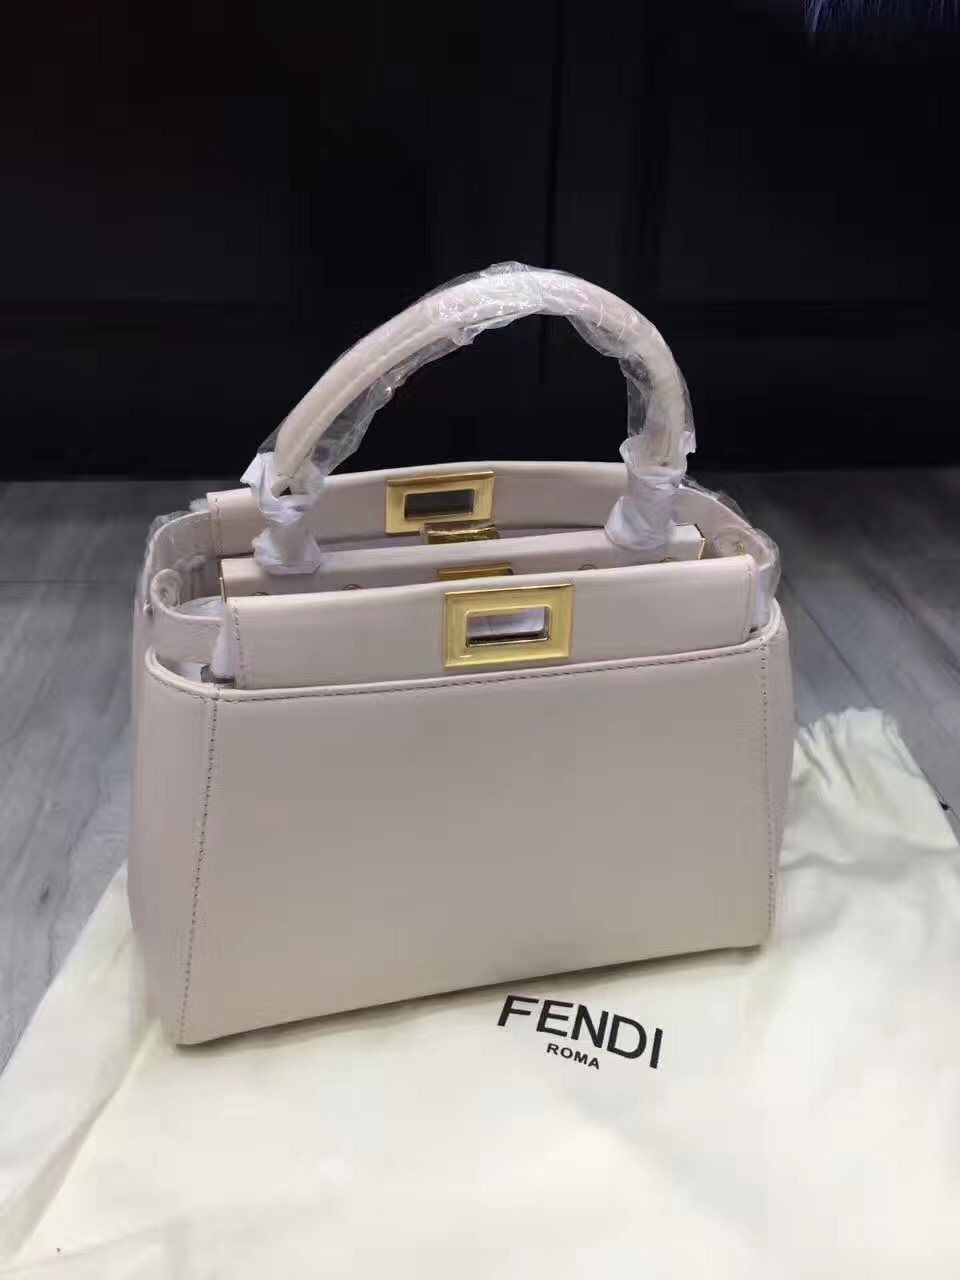 c142c4c06c4b fendi mini light gray peekaboo handbags  fendi26  -  367.00   Luxury ...